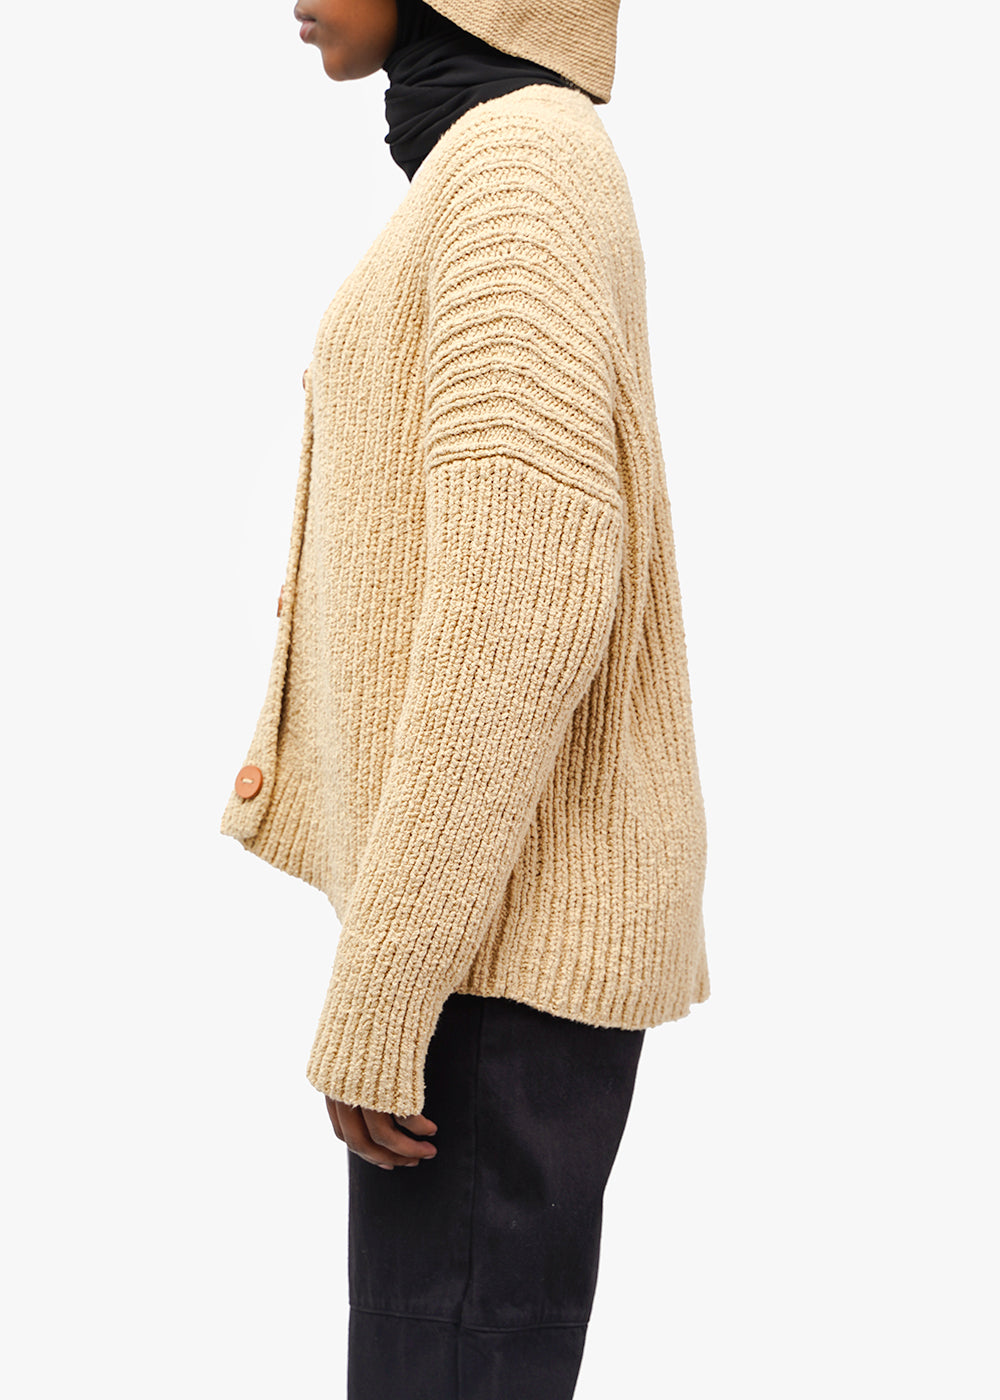 Lauren Manoogian Rib Boucle Cardigan — Shop sustainable fashion and slow fashion at New Classics Studios